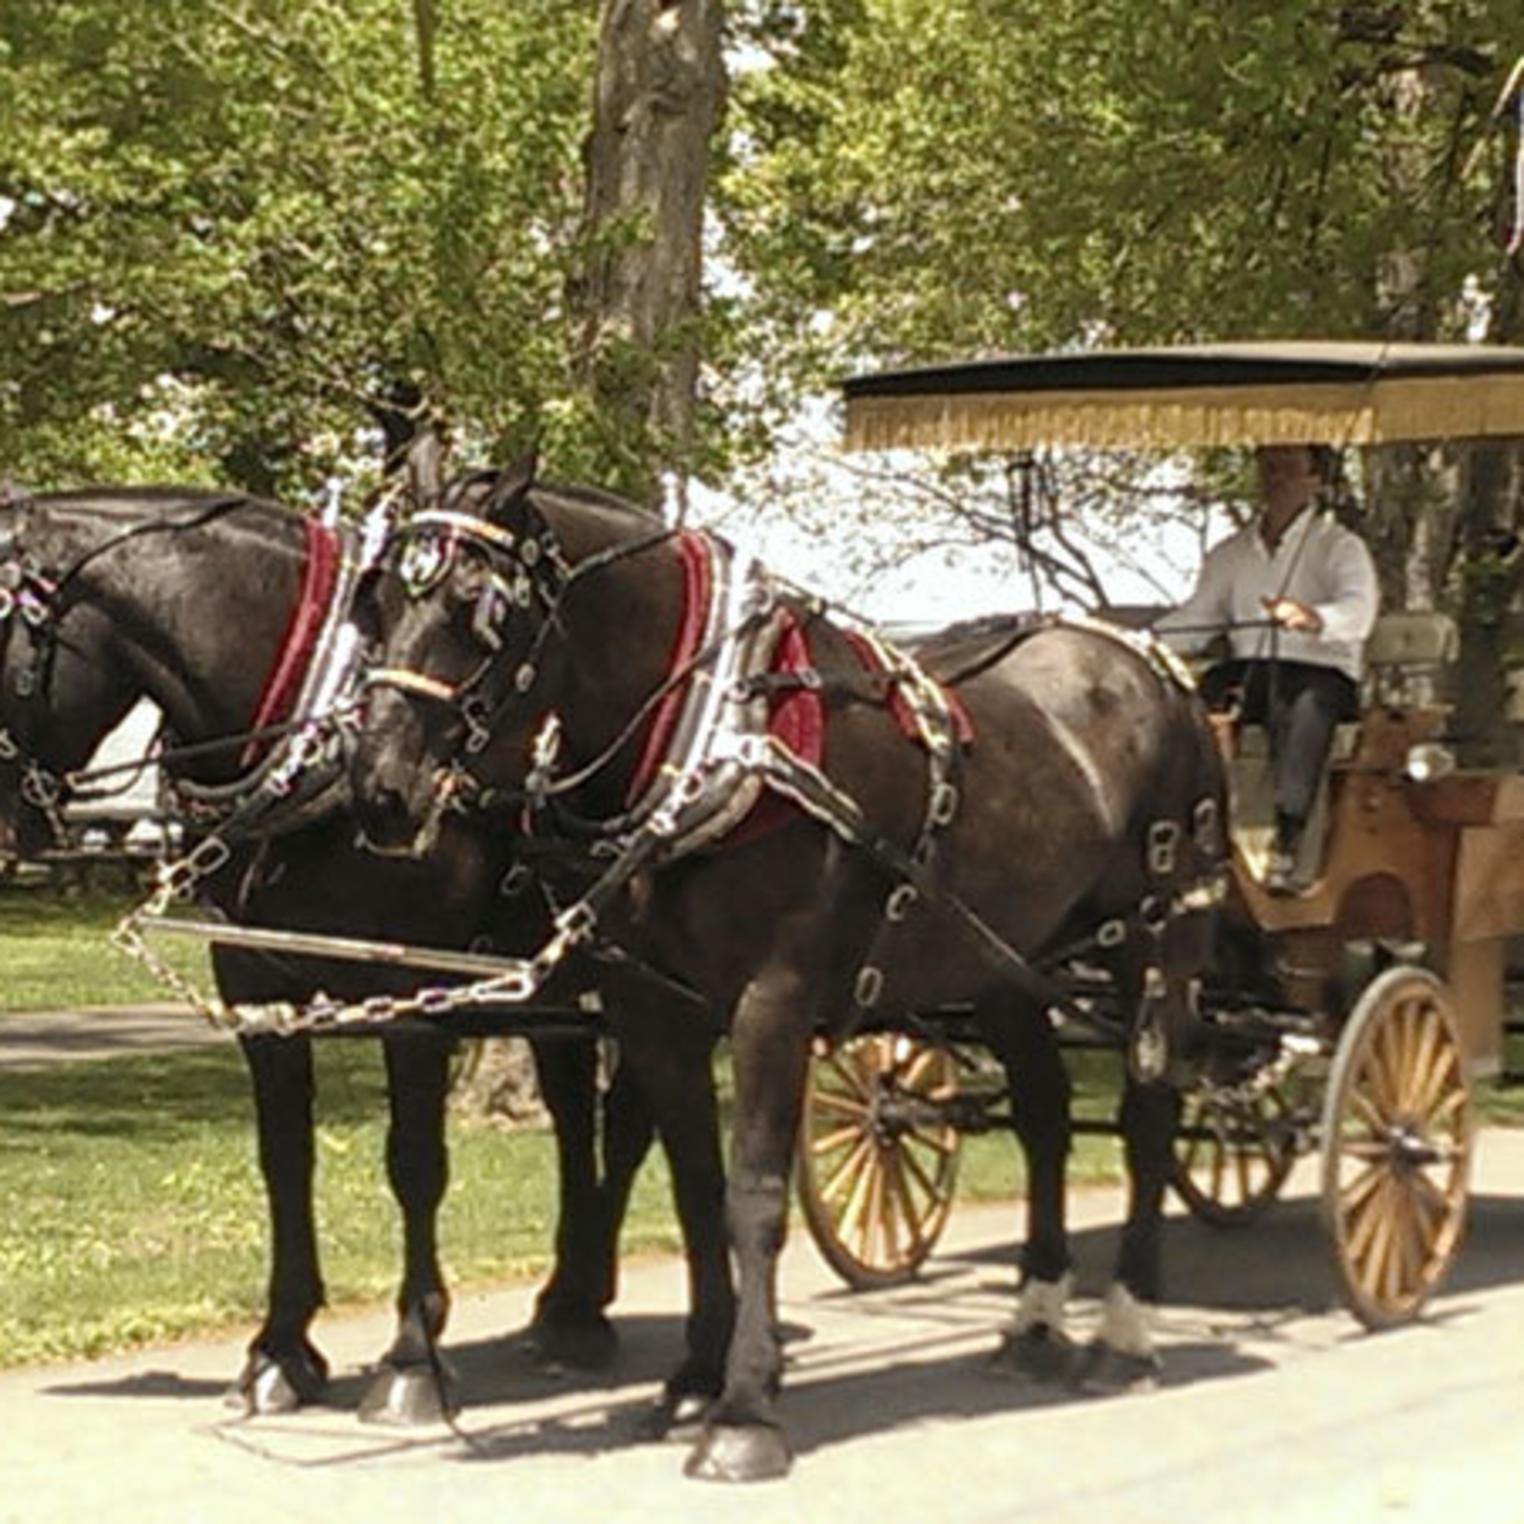 South Mountain Carriage Company